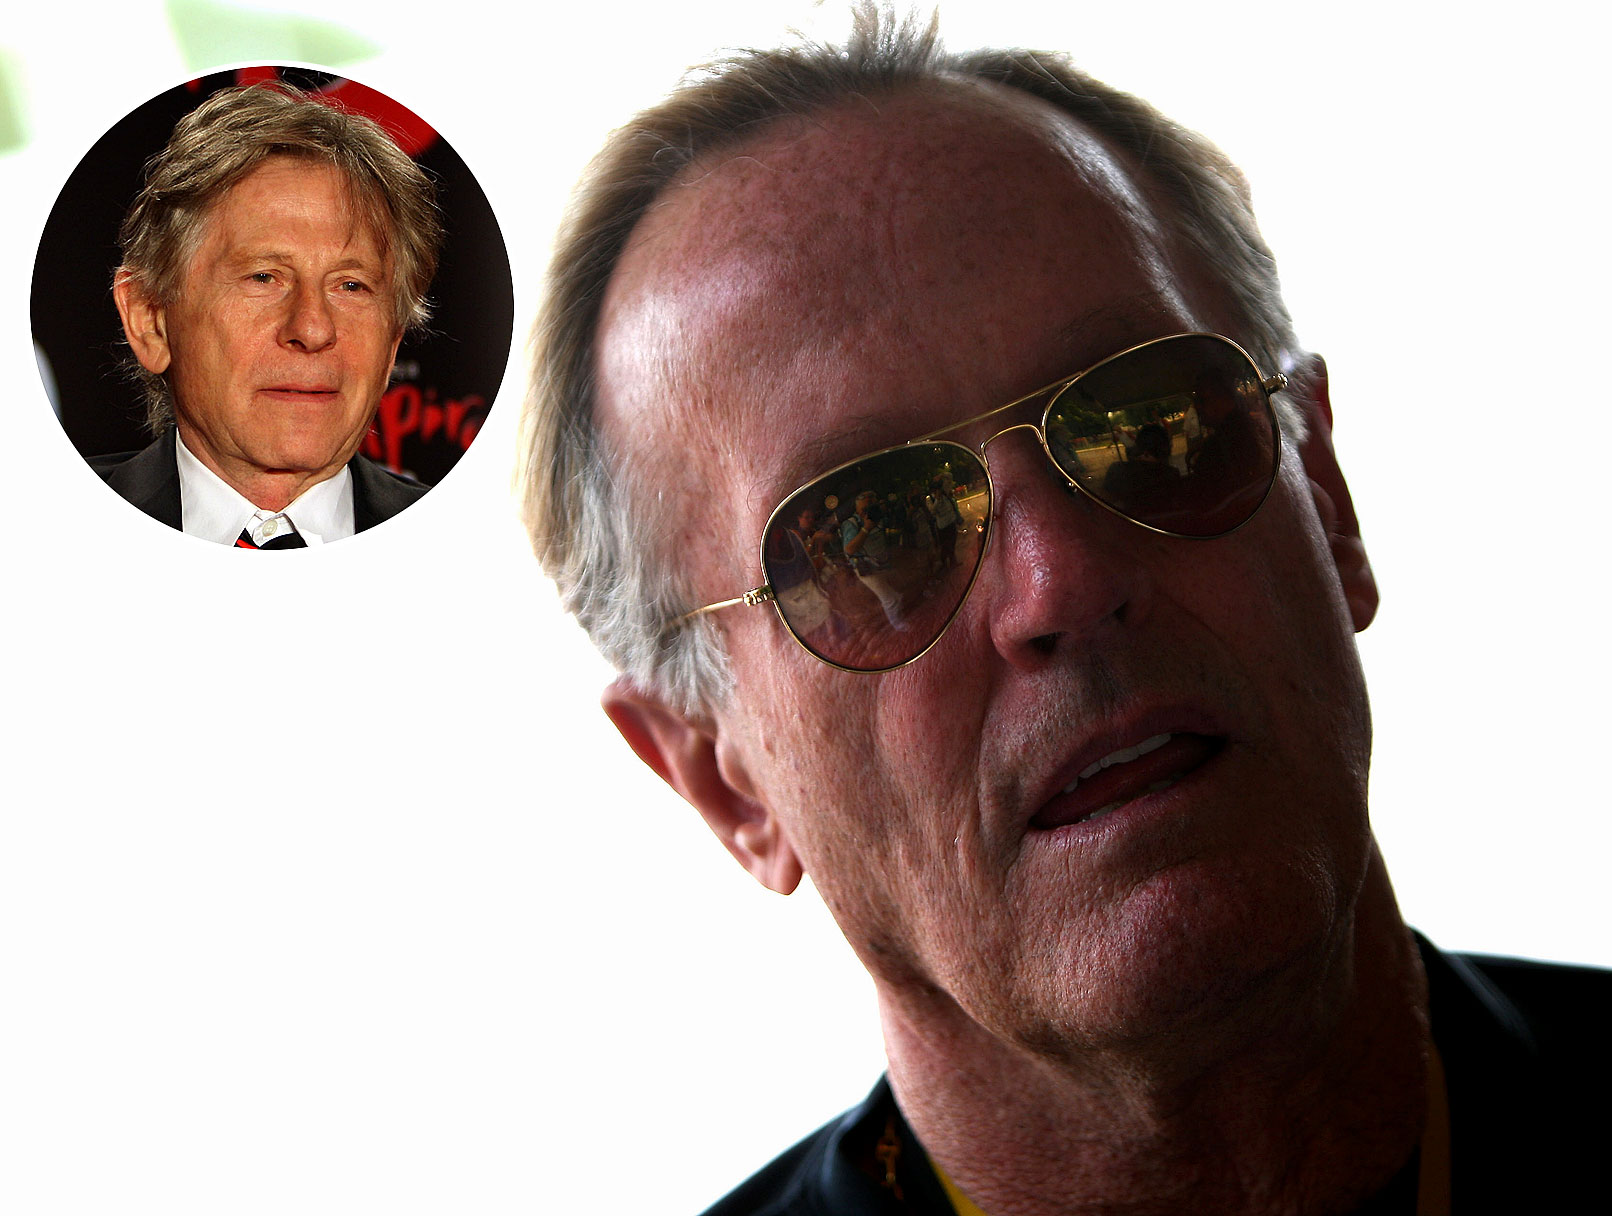 Peter Fonda Thinks Roman Polanski Isn't so Bad